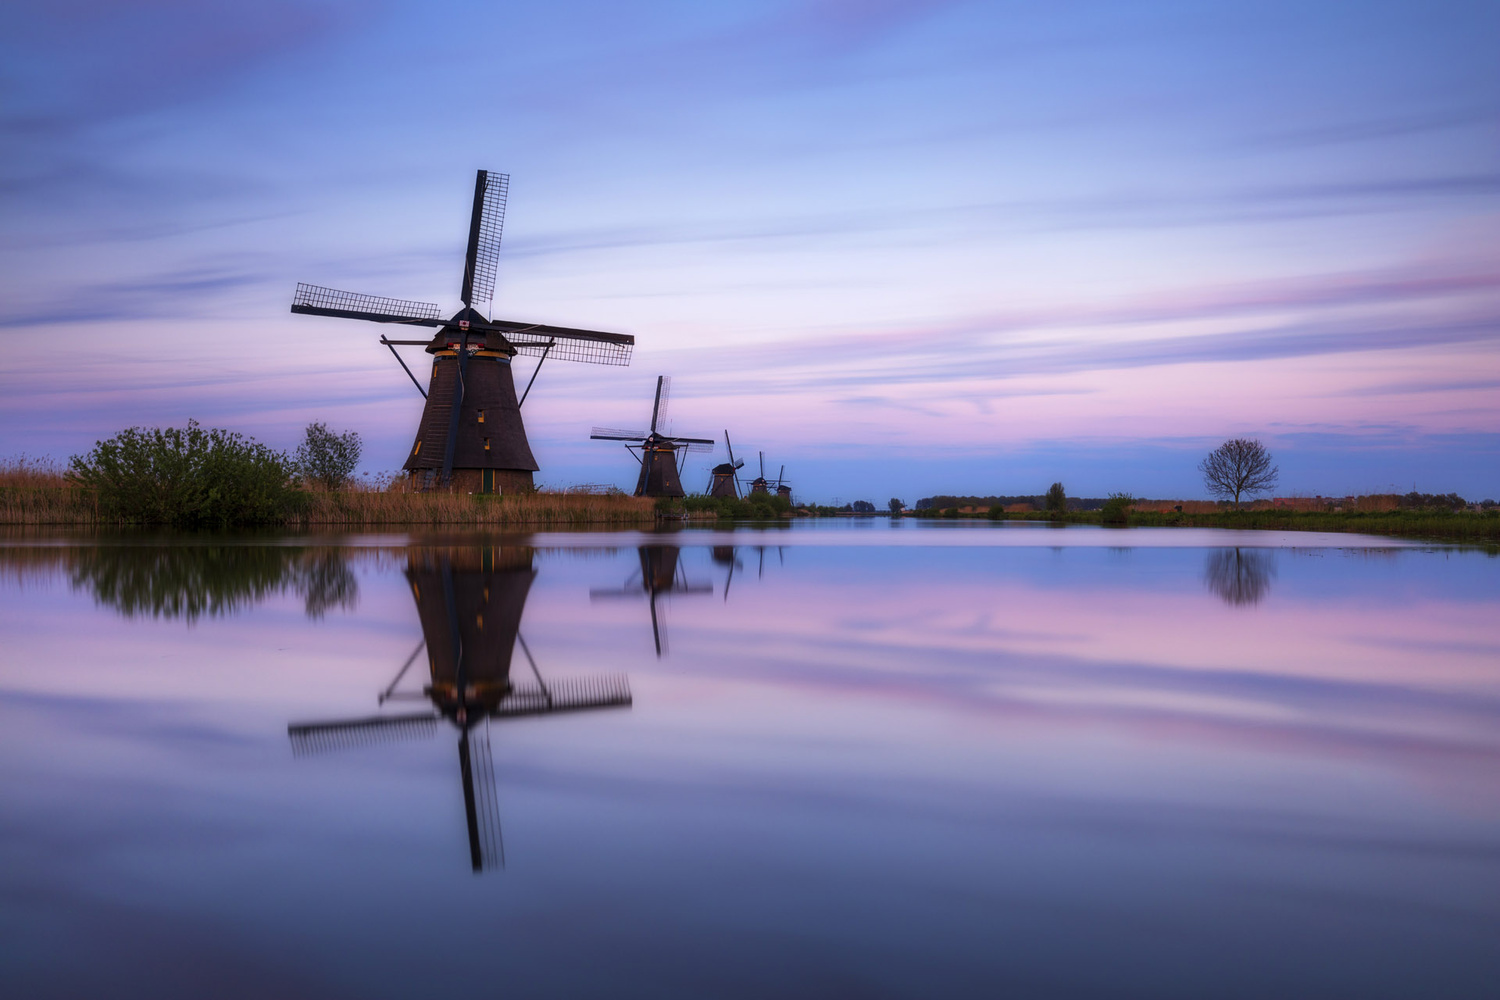 Kinderdijk evening by Mads Peter Iversen